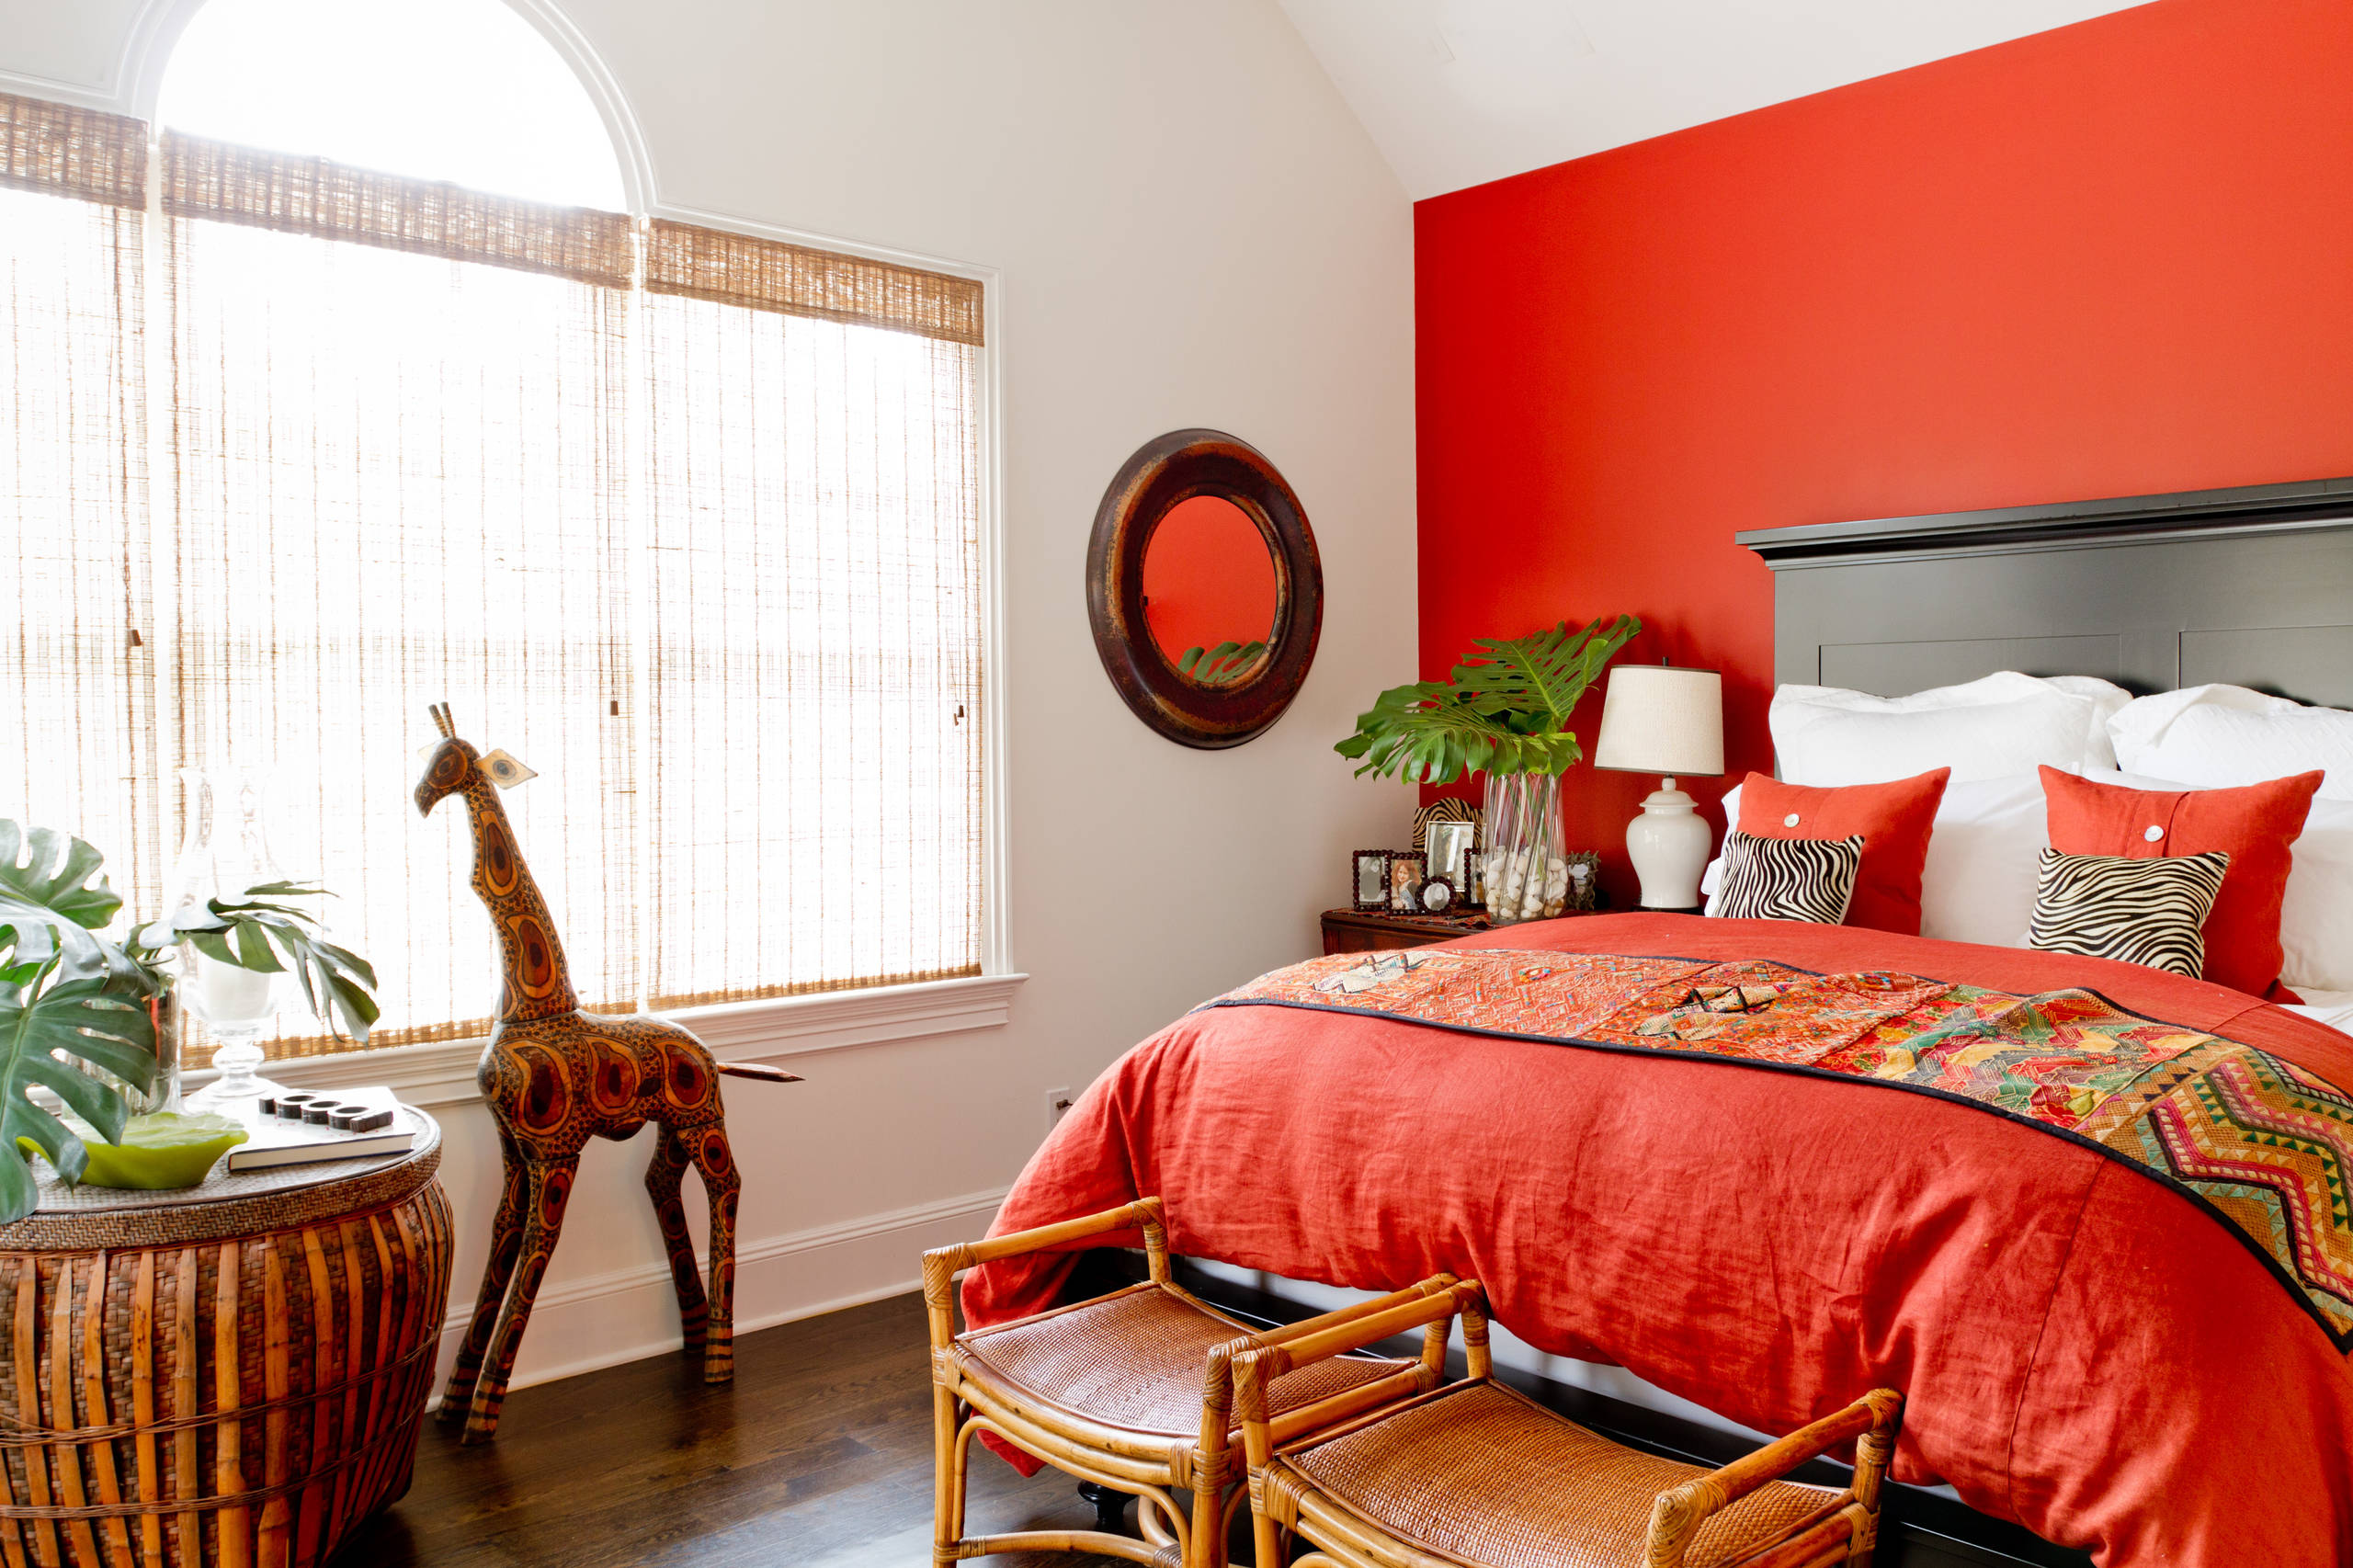 75 Beautiful Traditional Bedroom With Red Walls Pictures Ideas December 2020 Houzz